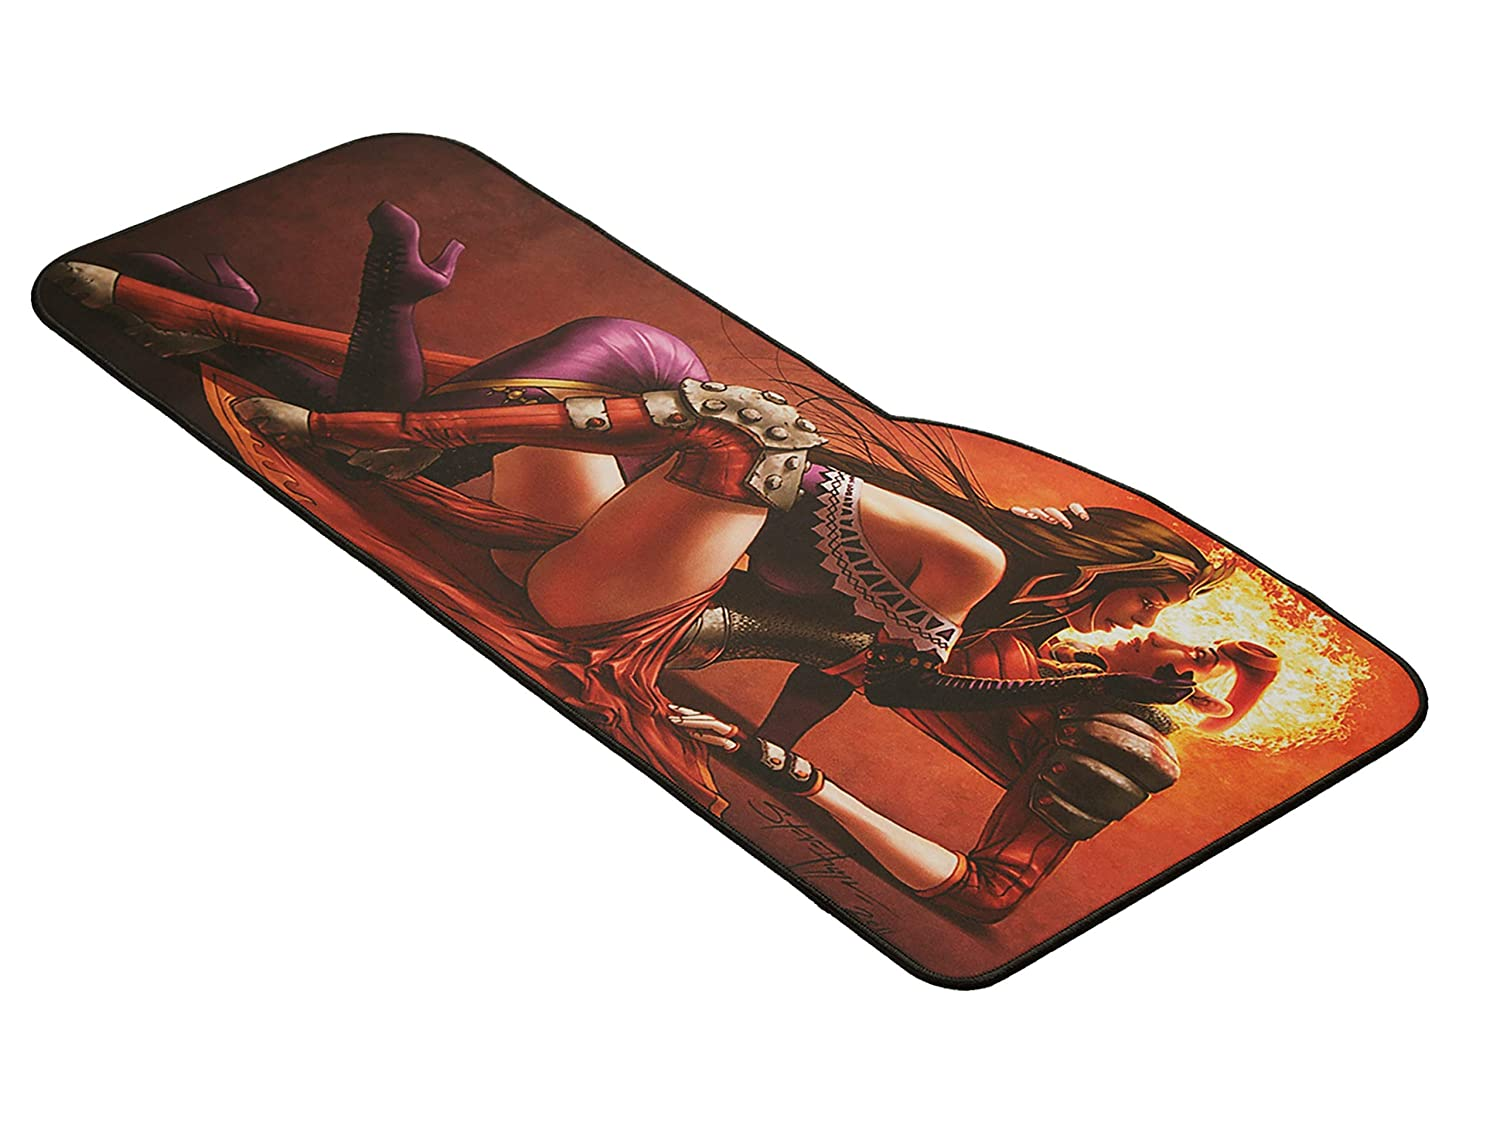 Overwatch Extended Size Custom Professional Gaming Mouse Pad Anti Slip Rubber Base Curve, Genji Stitched Edges 28.74 x 13 x 0.12